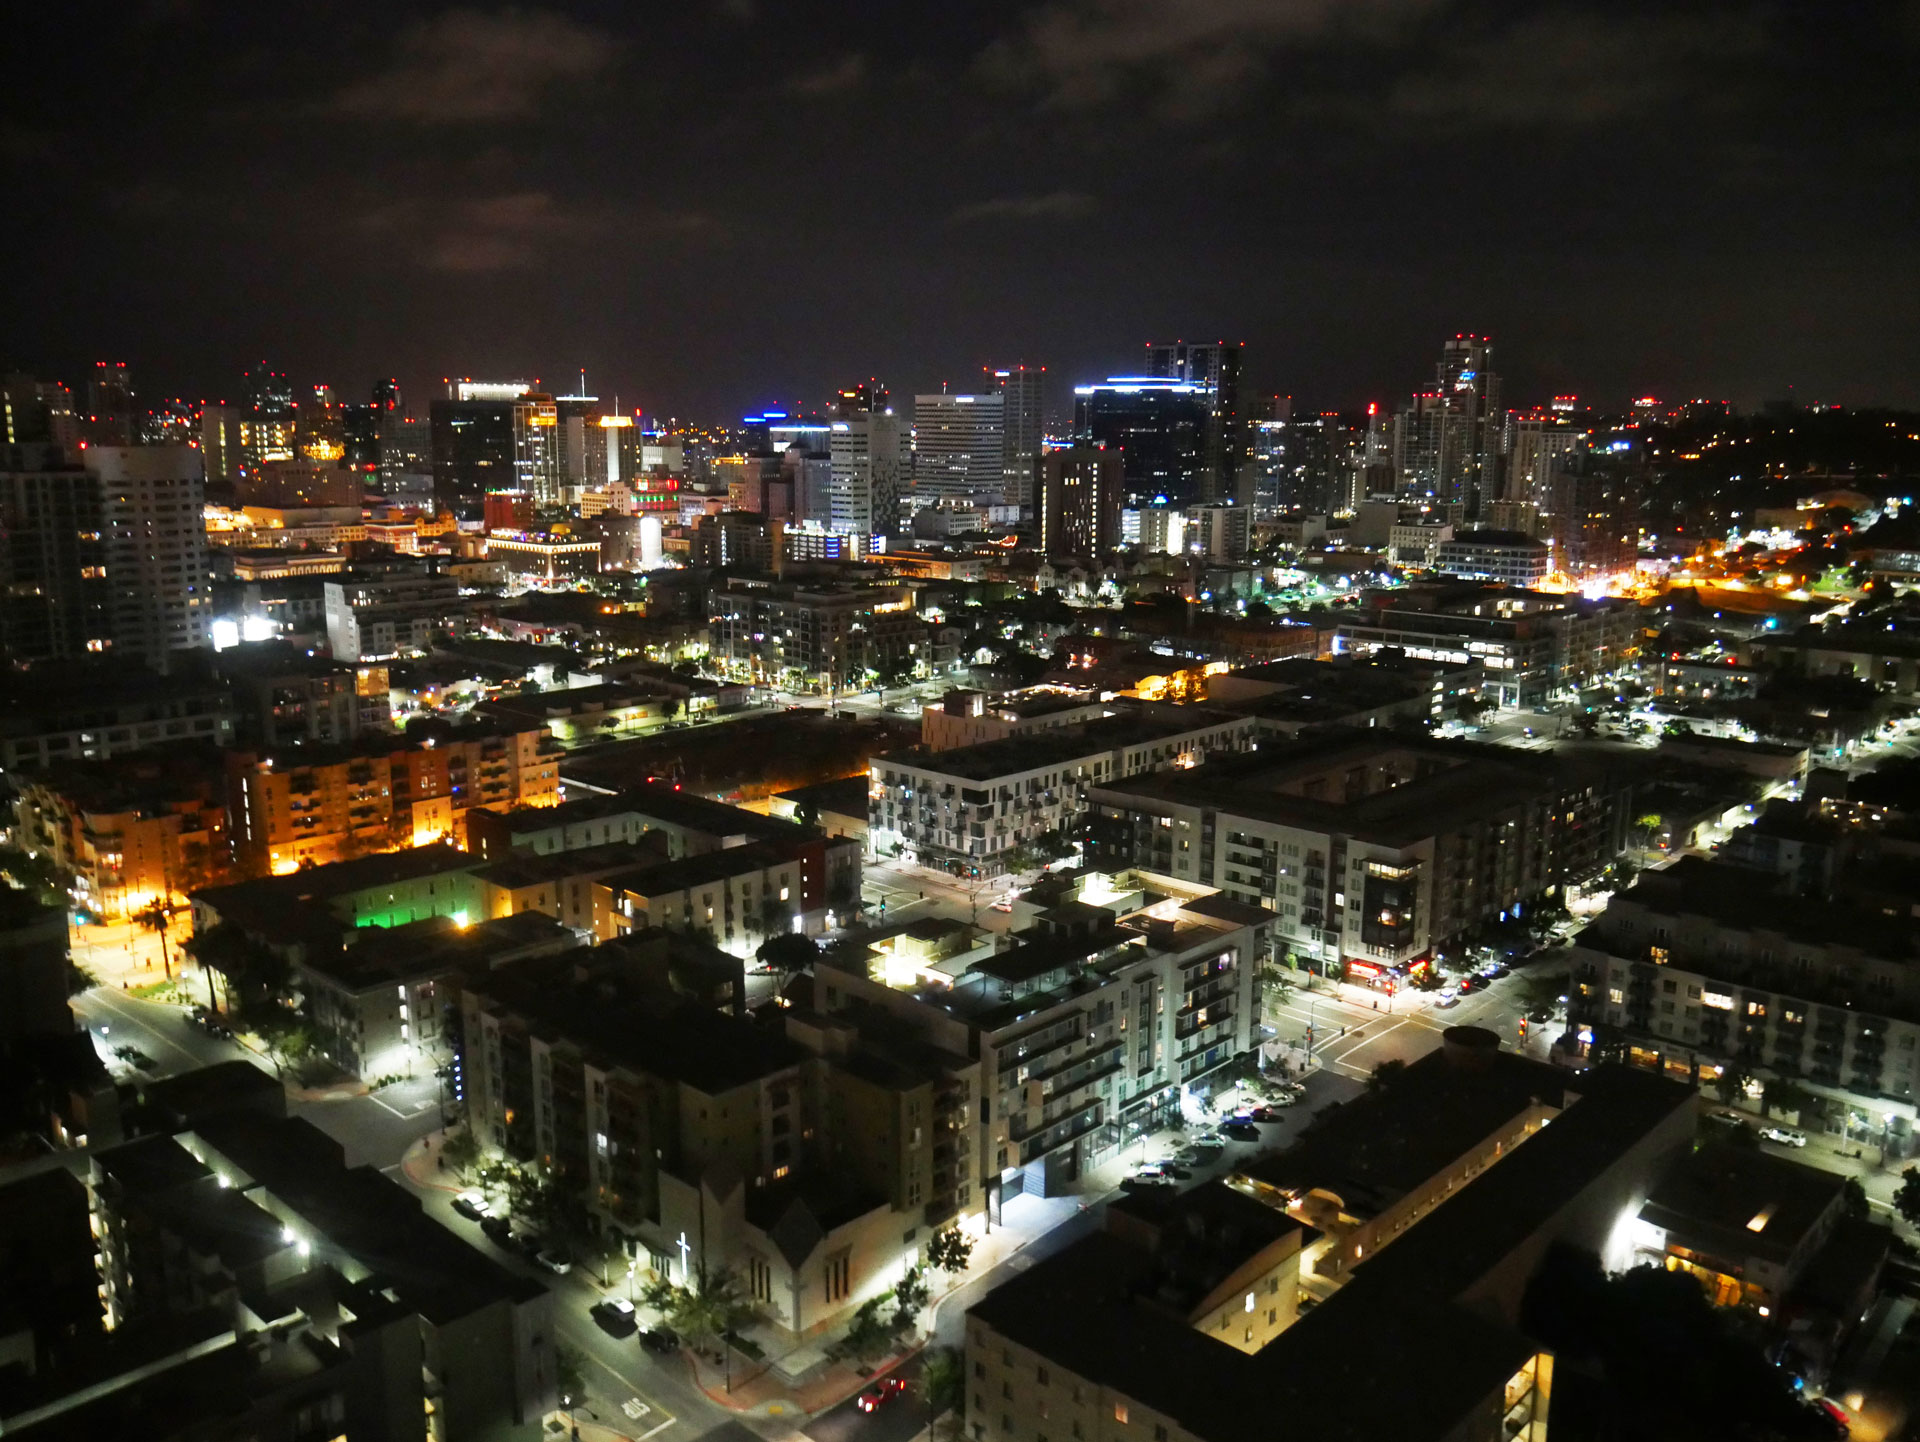 Skyline of downtown San Diego, CA, at night